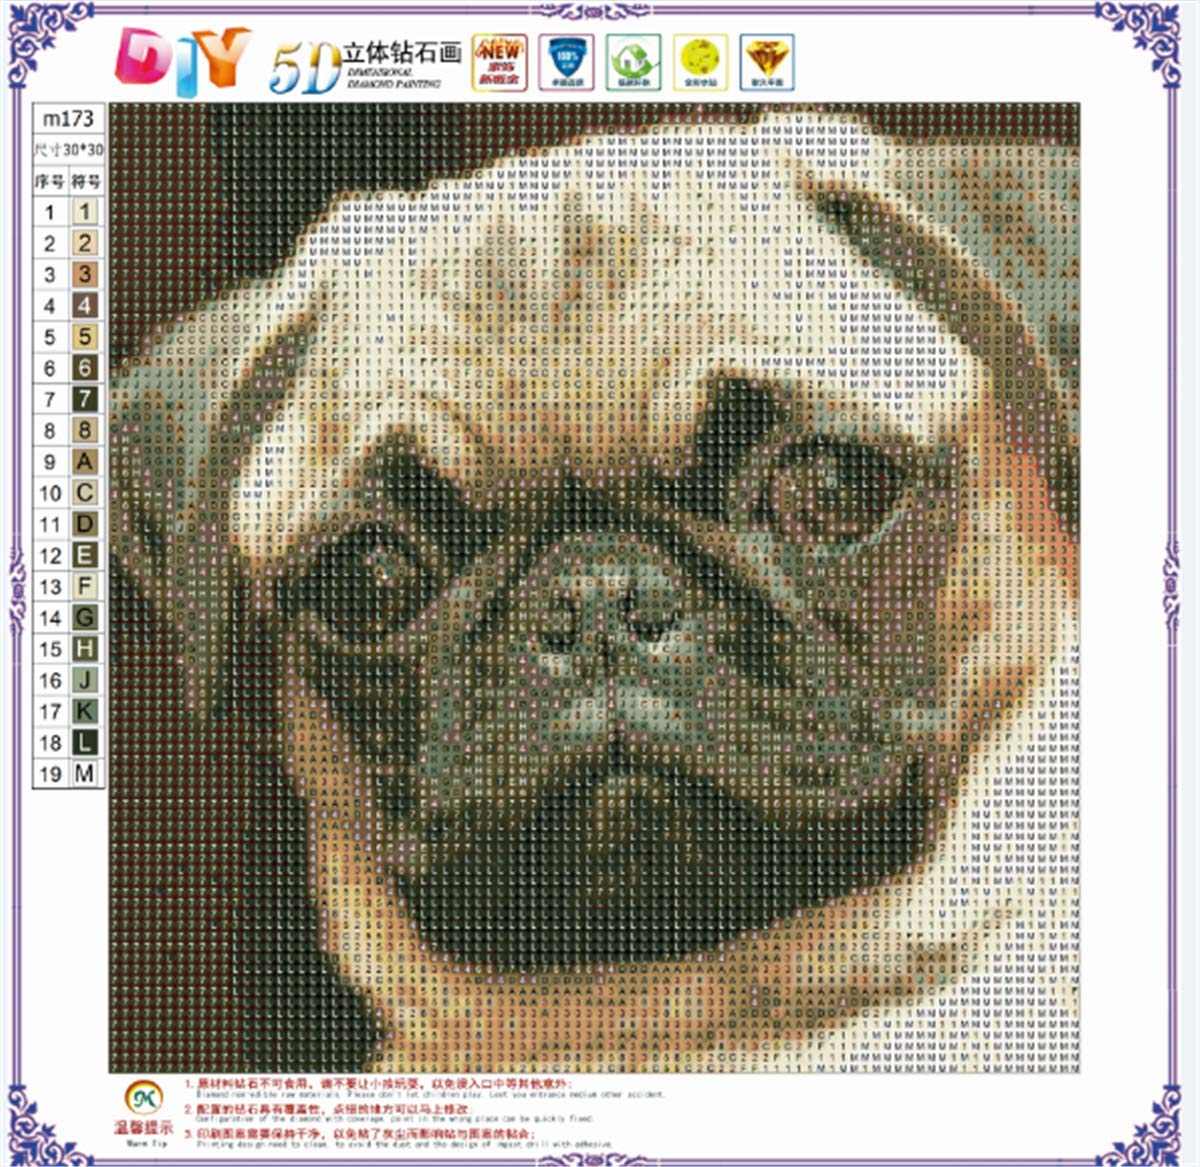 DIY 5D Diamond Painting by Number Kits Butterfly, Flower, Crystal Painting, 30X30CM Pug, Animal, Crystal Painting, 30X30CM Crystal Rhinestone Diamond Embroidery Painting